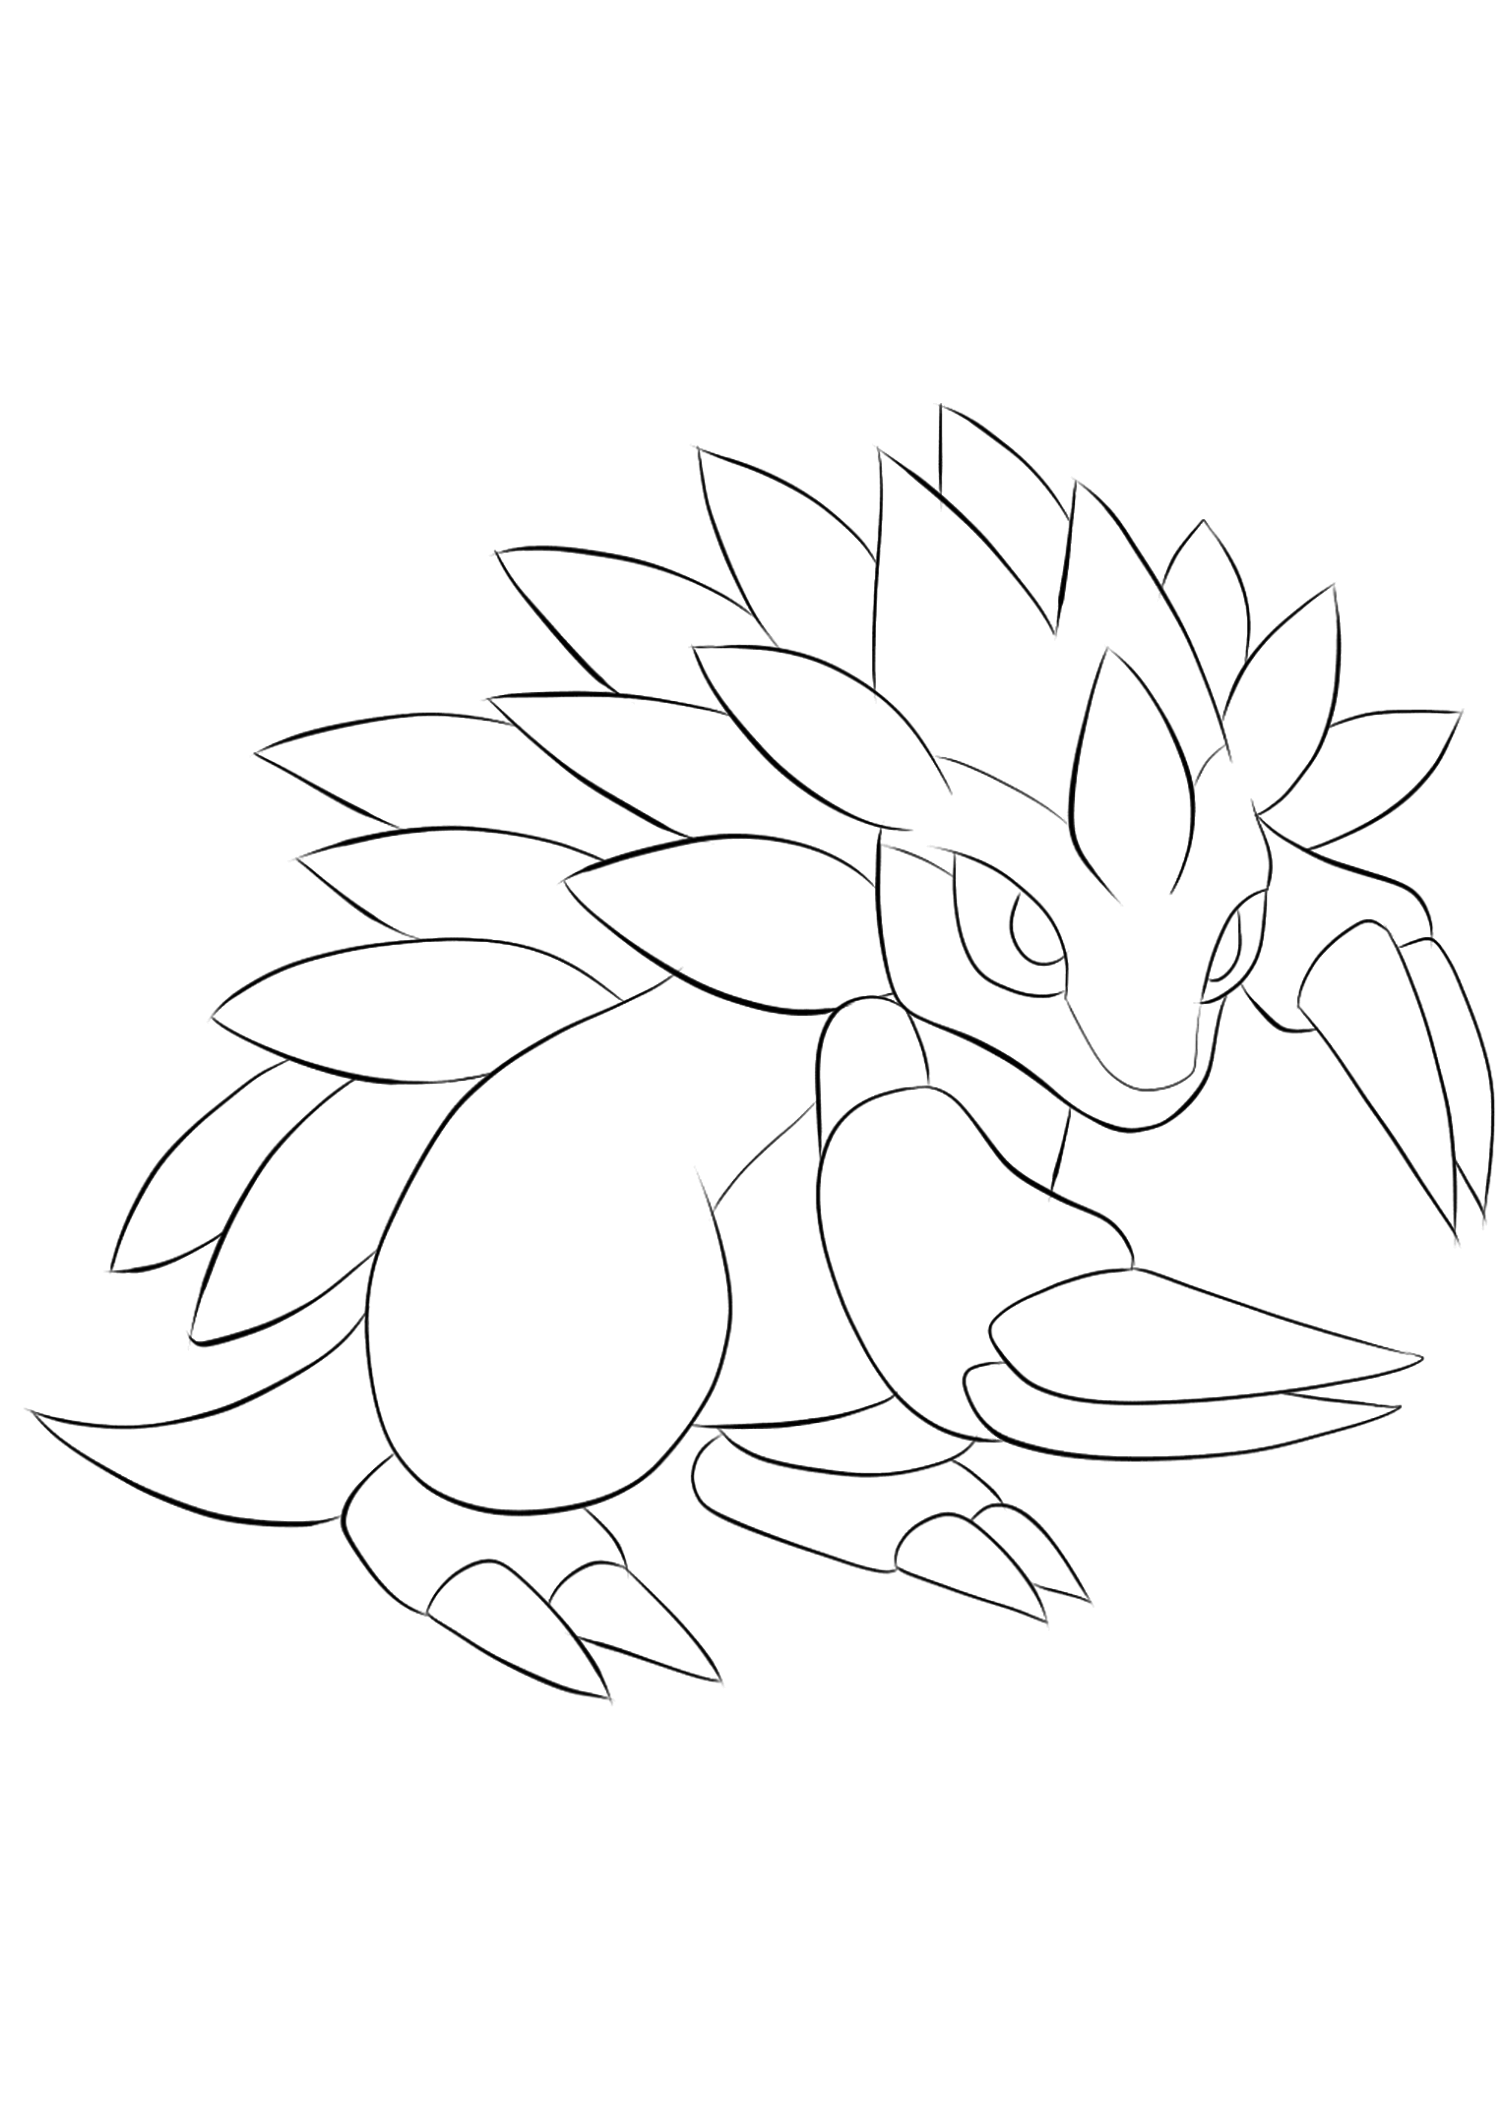 Sandslash (No.28)Sandslash Coloring page, Generation I Pokemon of type Ice and SteelOriginal image credit: Pokemon linearts by Lilly Gerbil'font-size:smaller;color:gray'>Permission: All rights reserved © Pokemon company and Ken Sugimori.